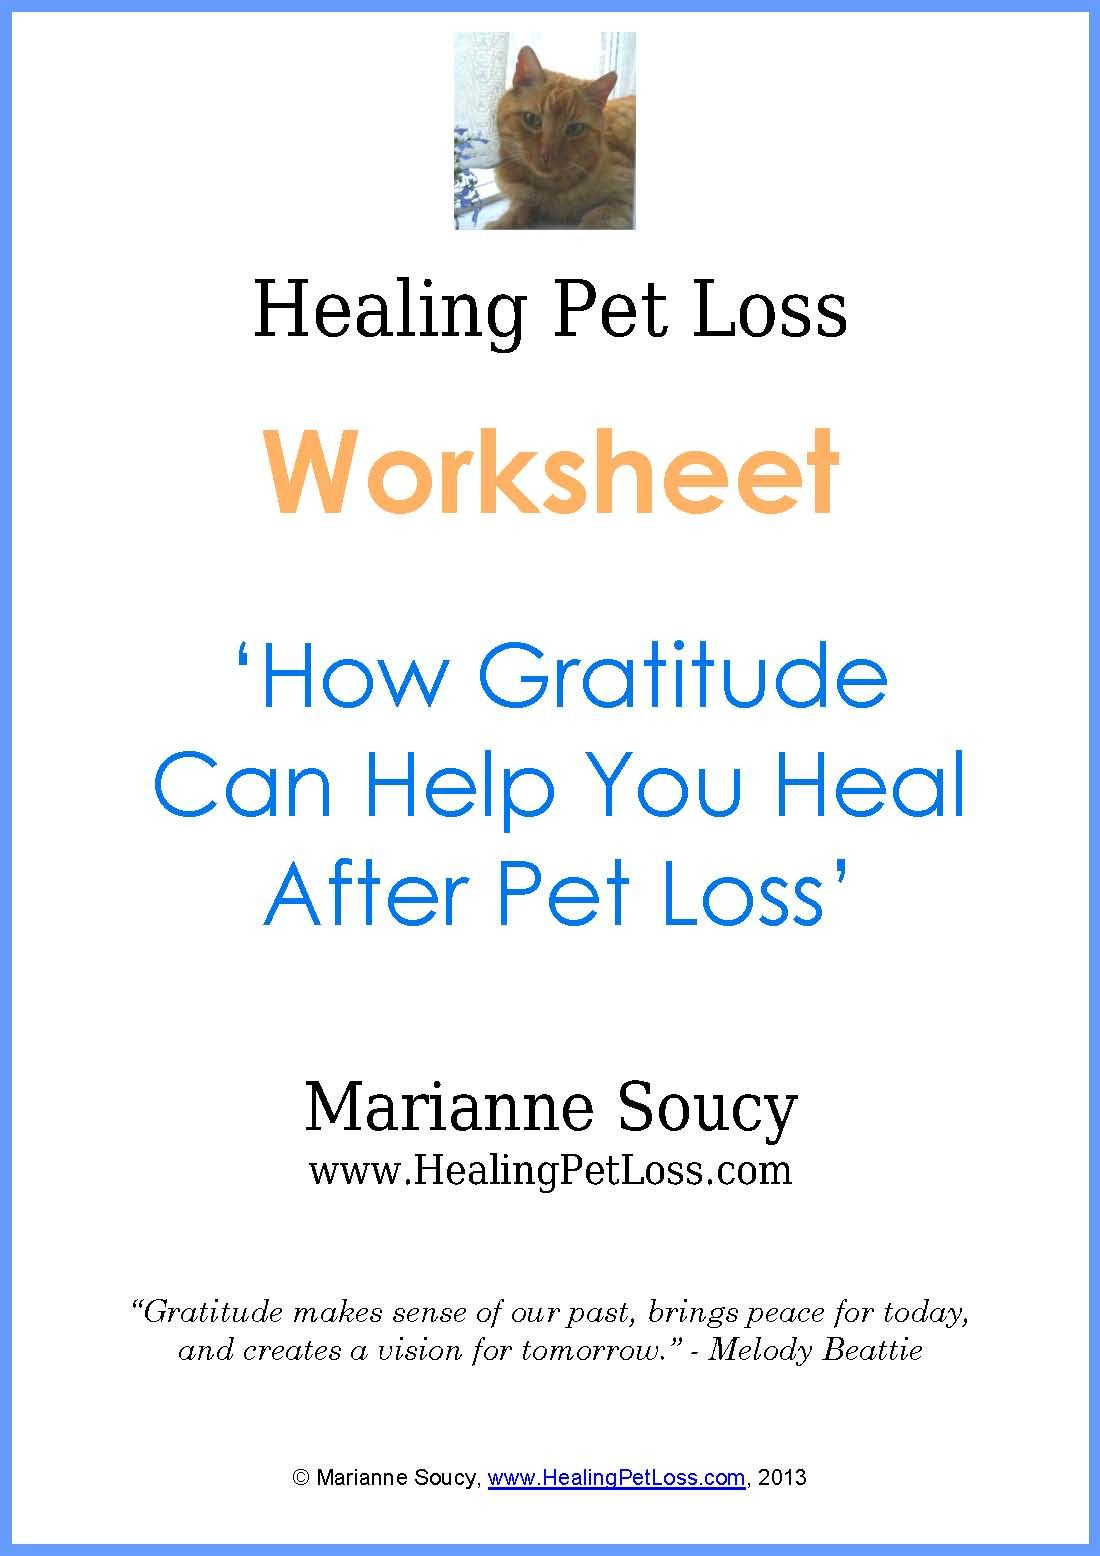 How The Power Of Gratitude Can Help You Heal After Pet Loss